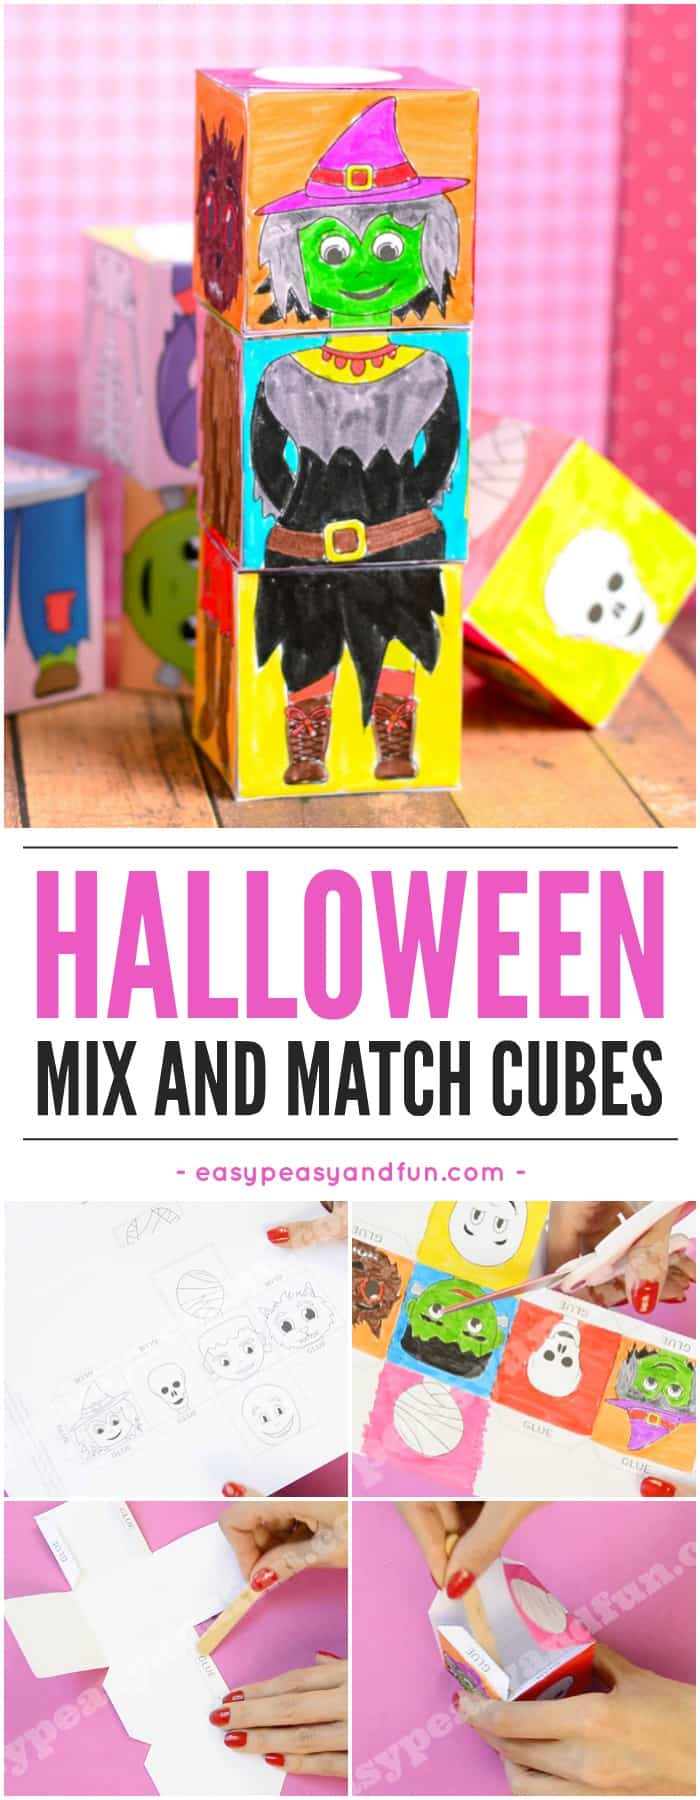 Printable Halloween mix and match cubes. Super fun Halloween activity for kids in classroom or at home.